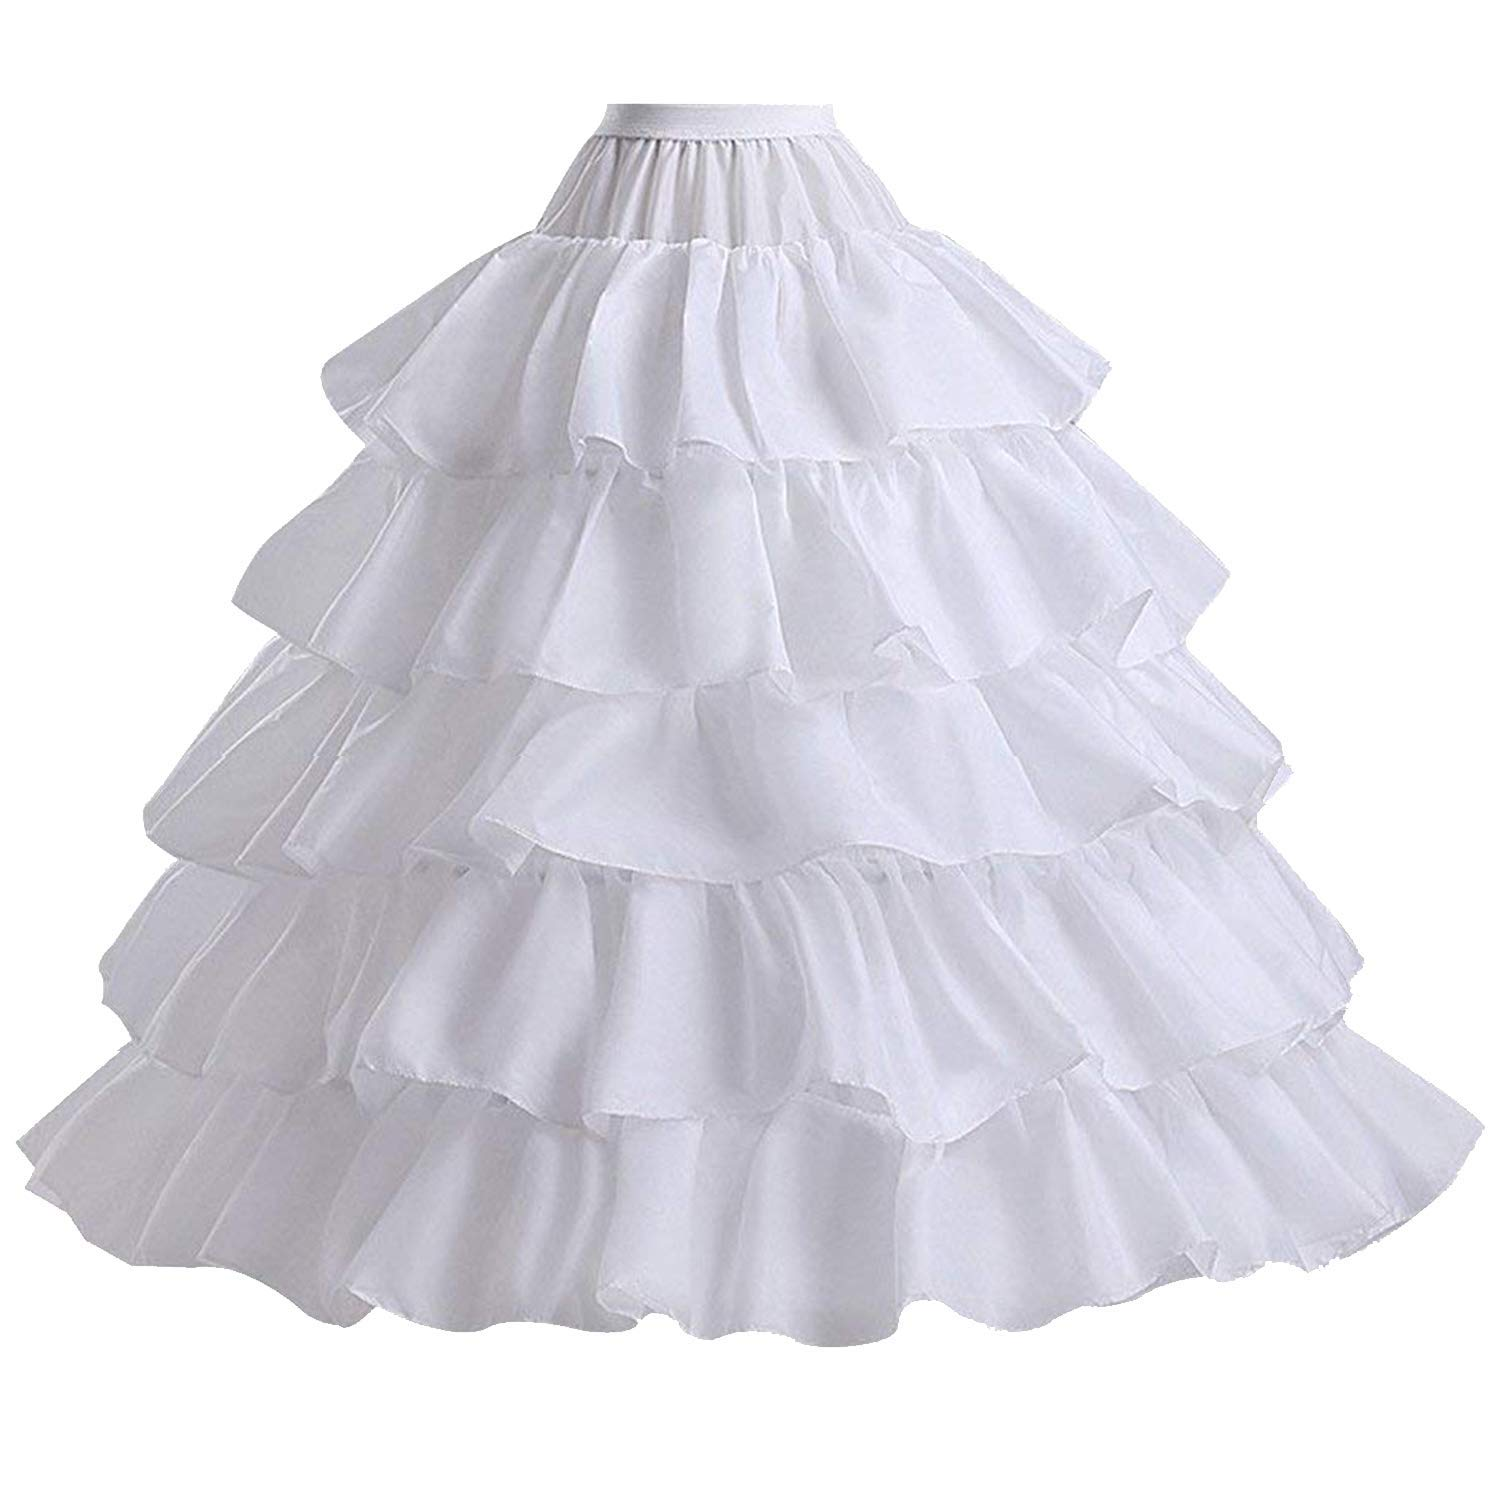 Women's Petticoats A line Crinoline Half Slips Underskirt for Bridal Dress Hoop Skirt for Wedding Dress Ball Gown Miao Duo PE5